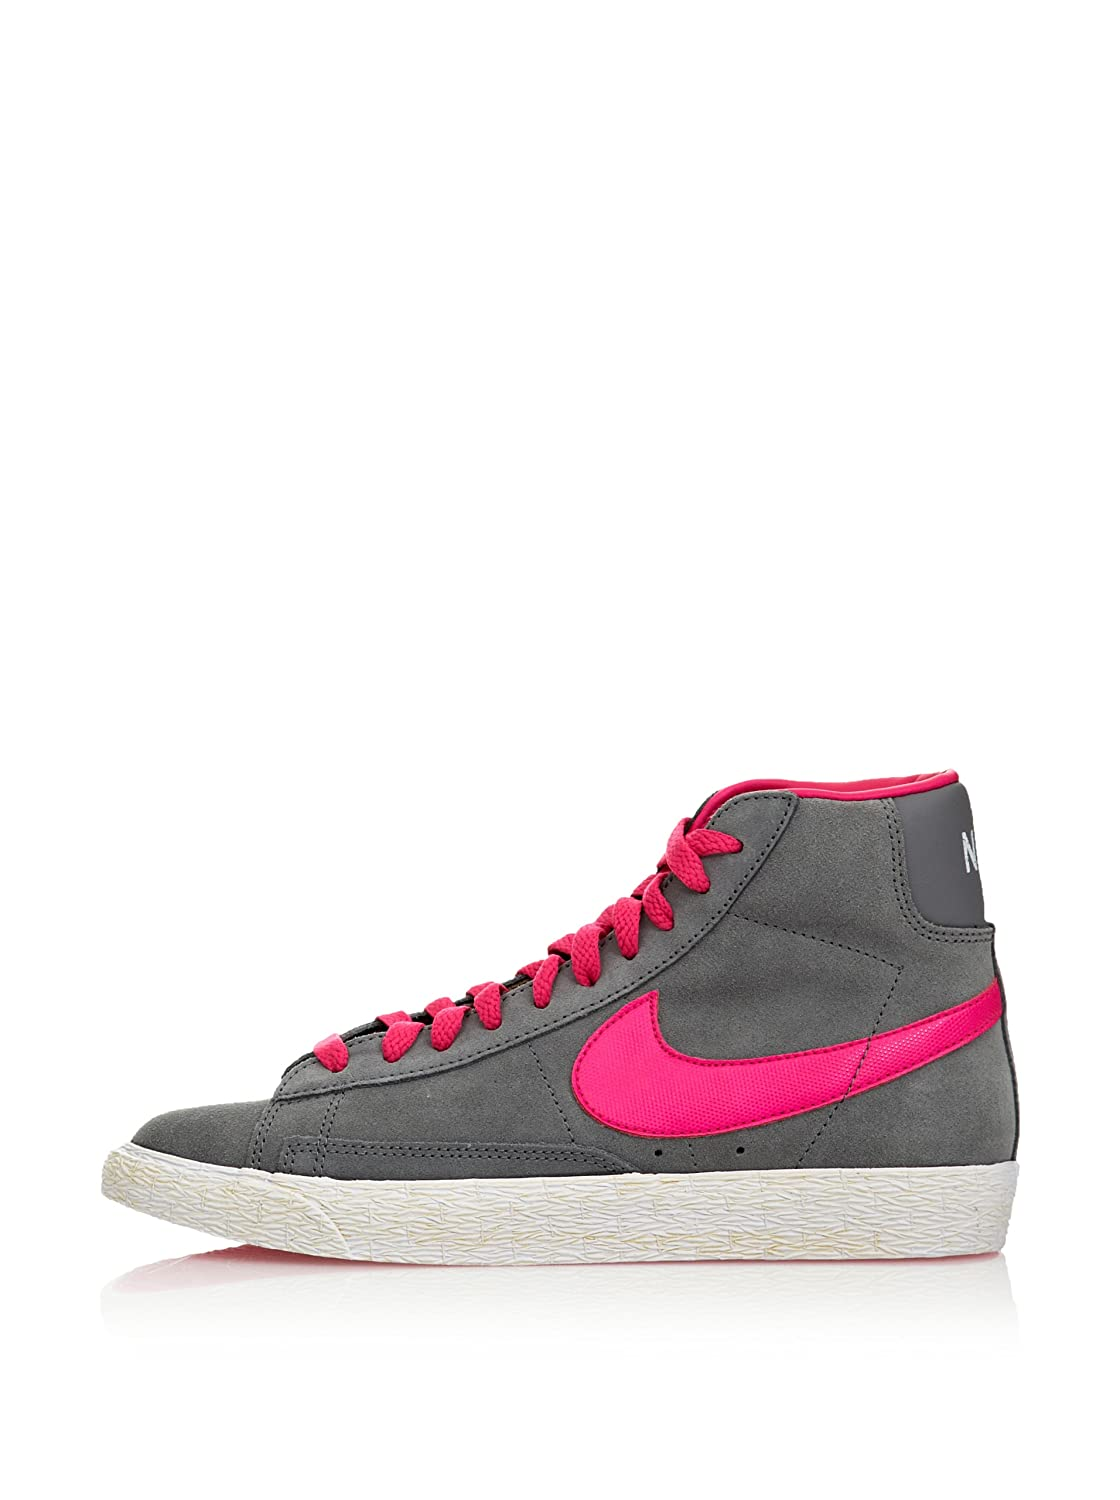 info for 95308 04fb7 Nike Girls' Blazer Mid Vintage (GS) High-top Trainers